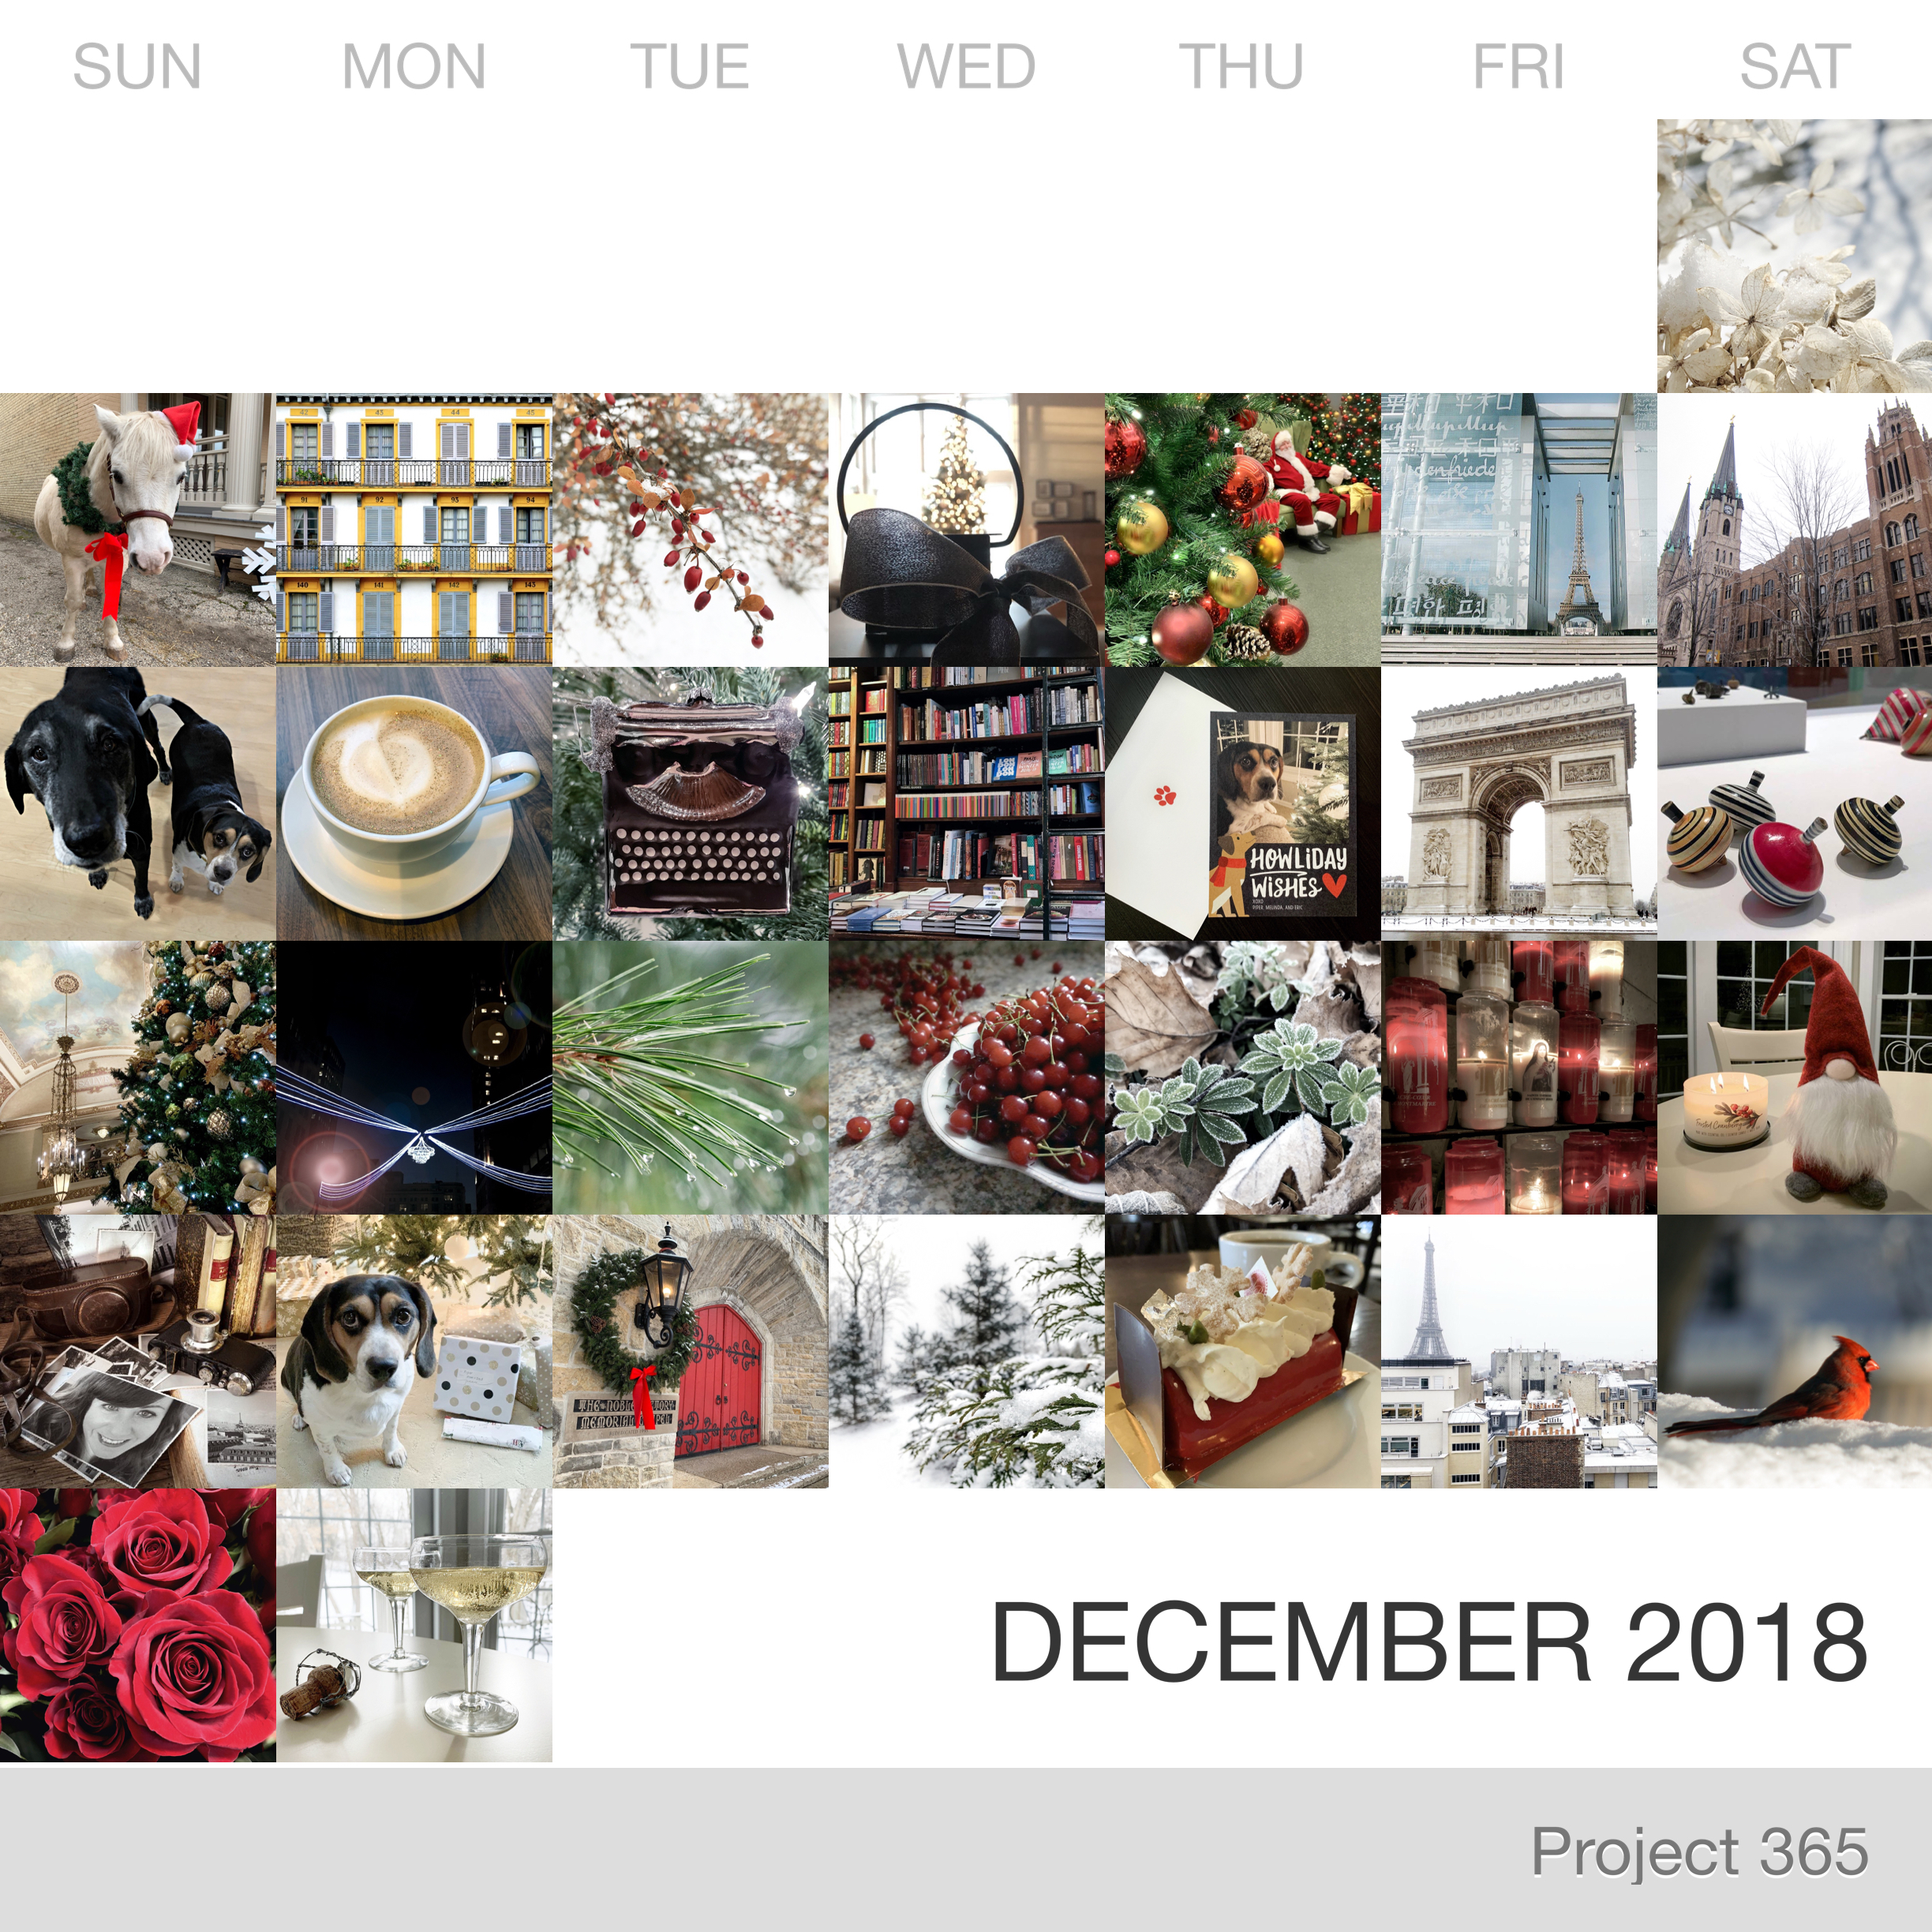 Project 365 _December-2018_Collage.jpg